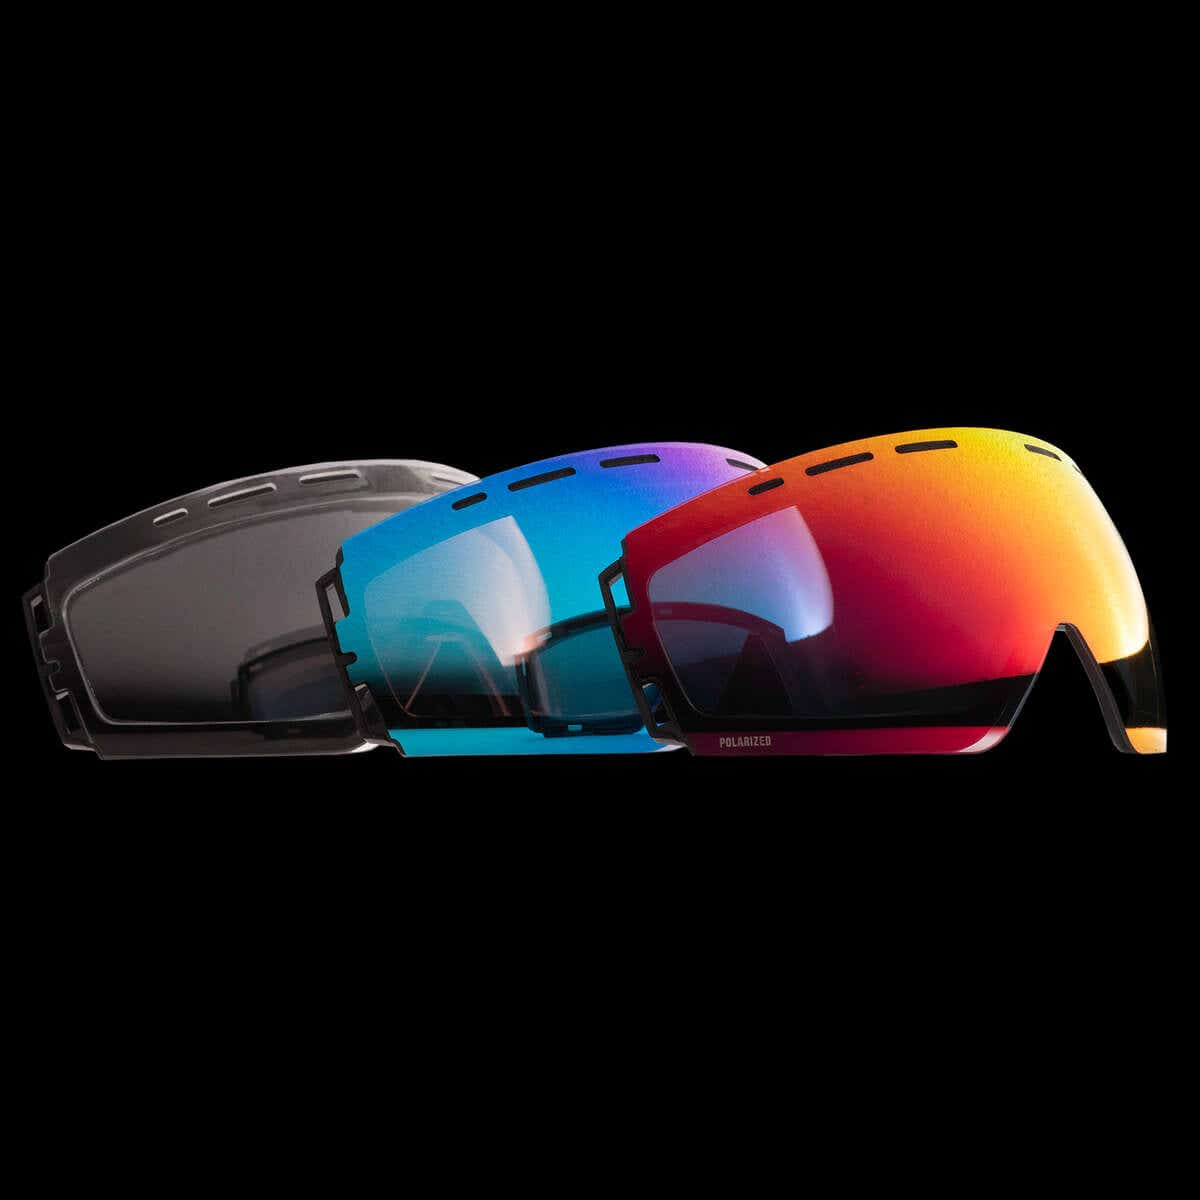 RG1-DX Magloc Polarized Lens Pack